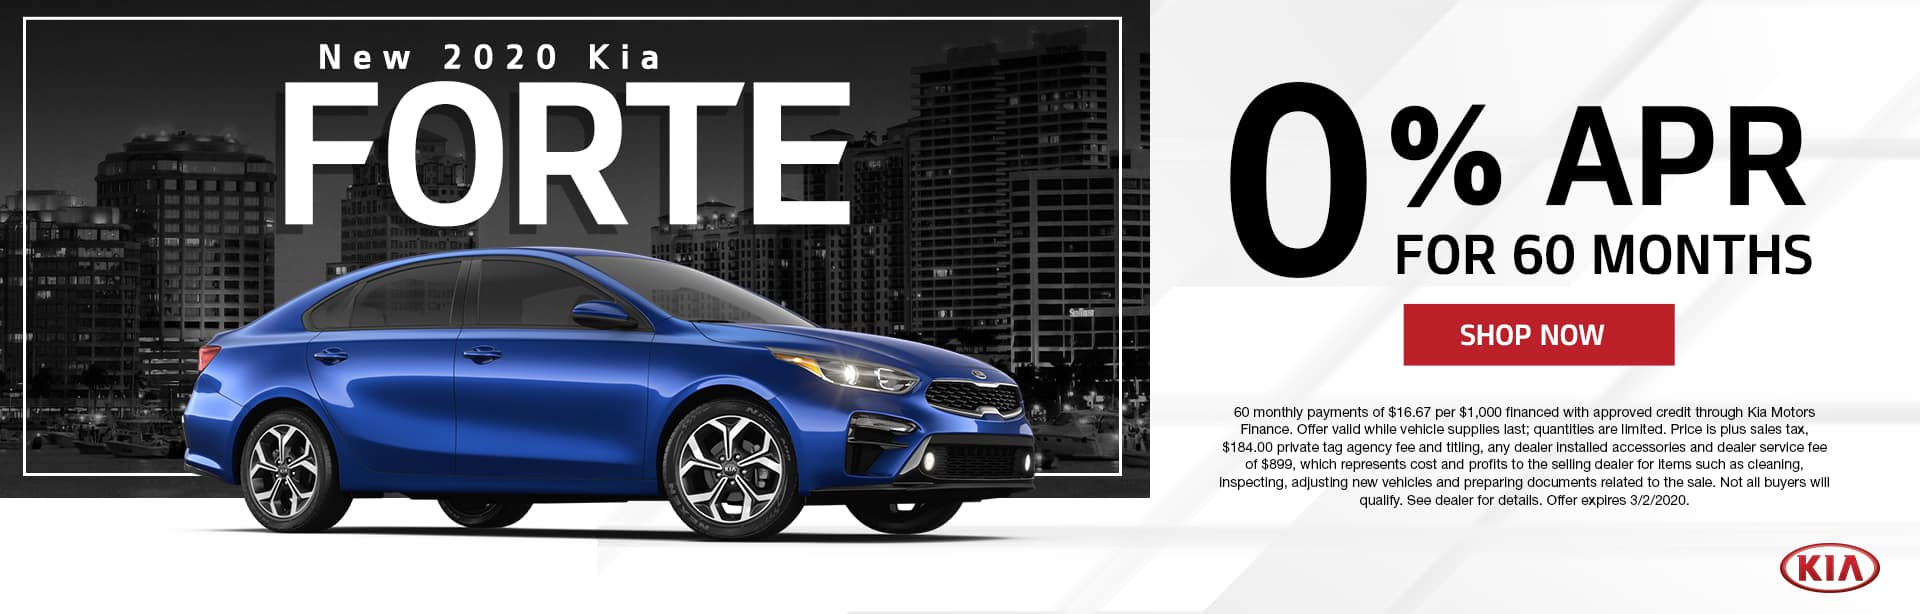 New 2020 Kia Forte | 0% APR For 60 Months